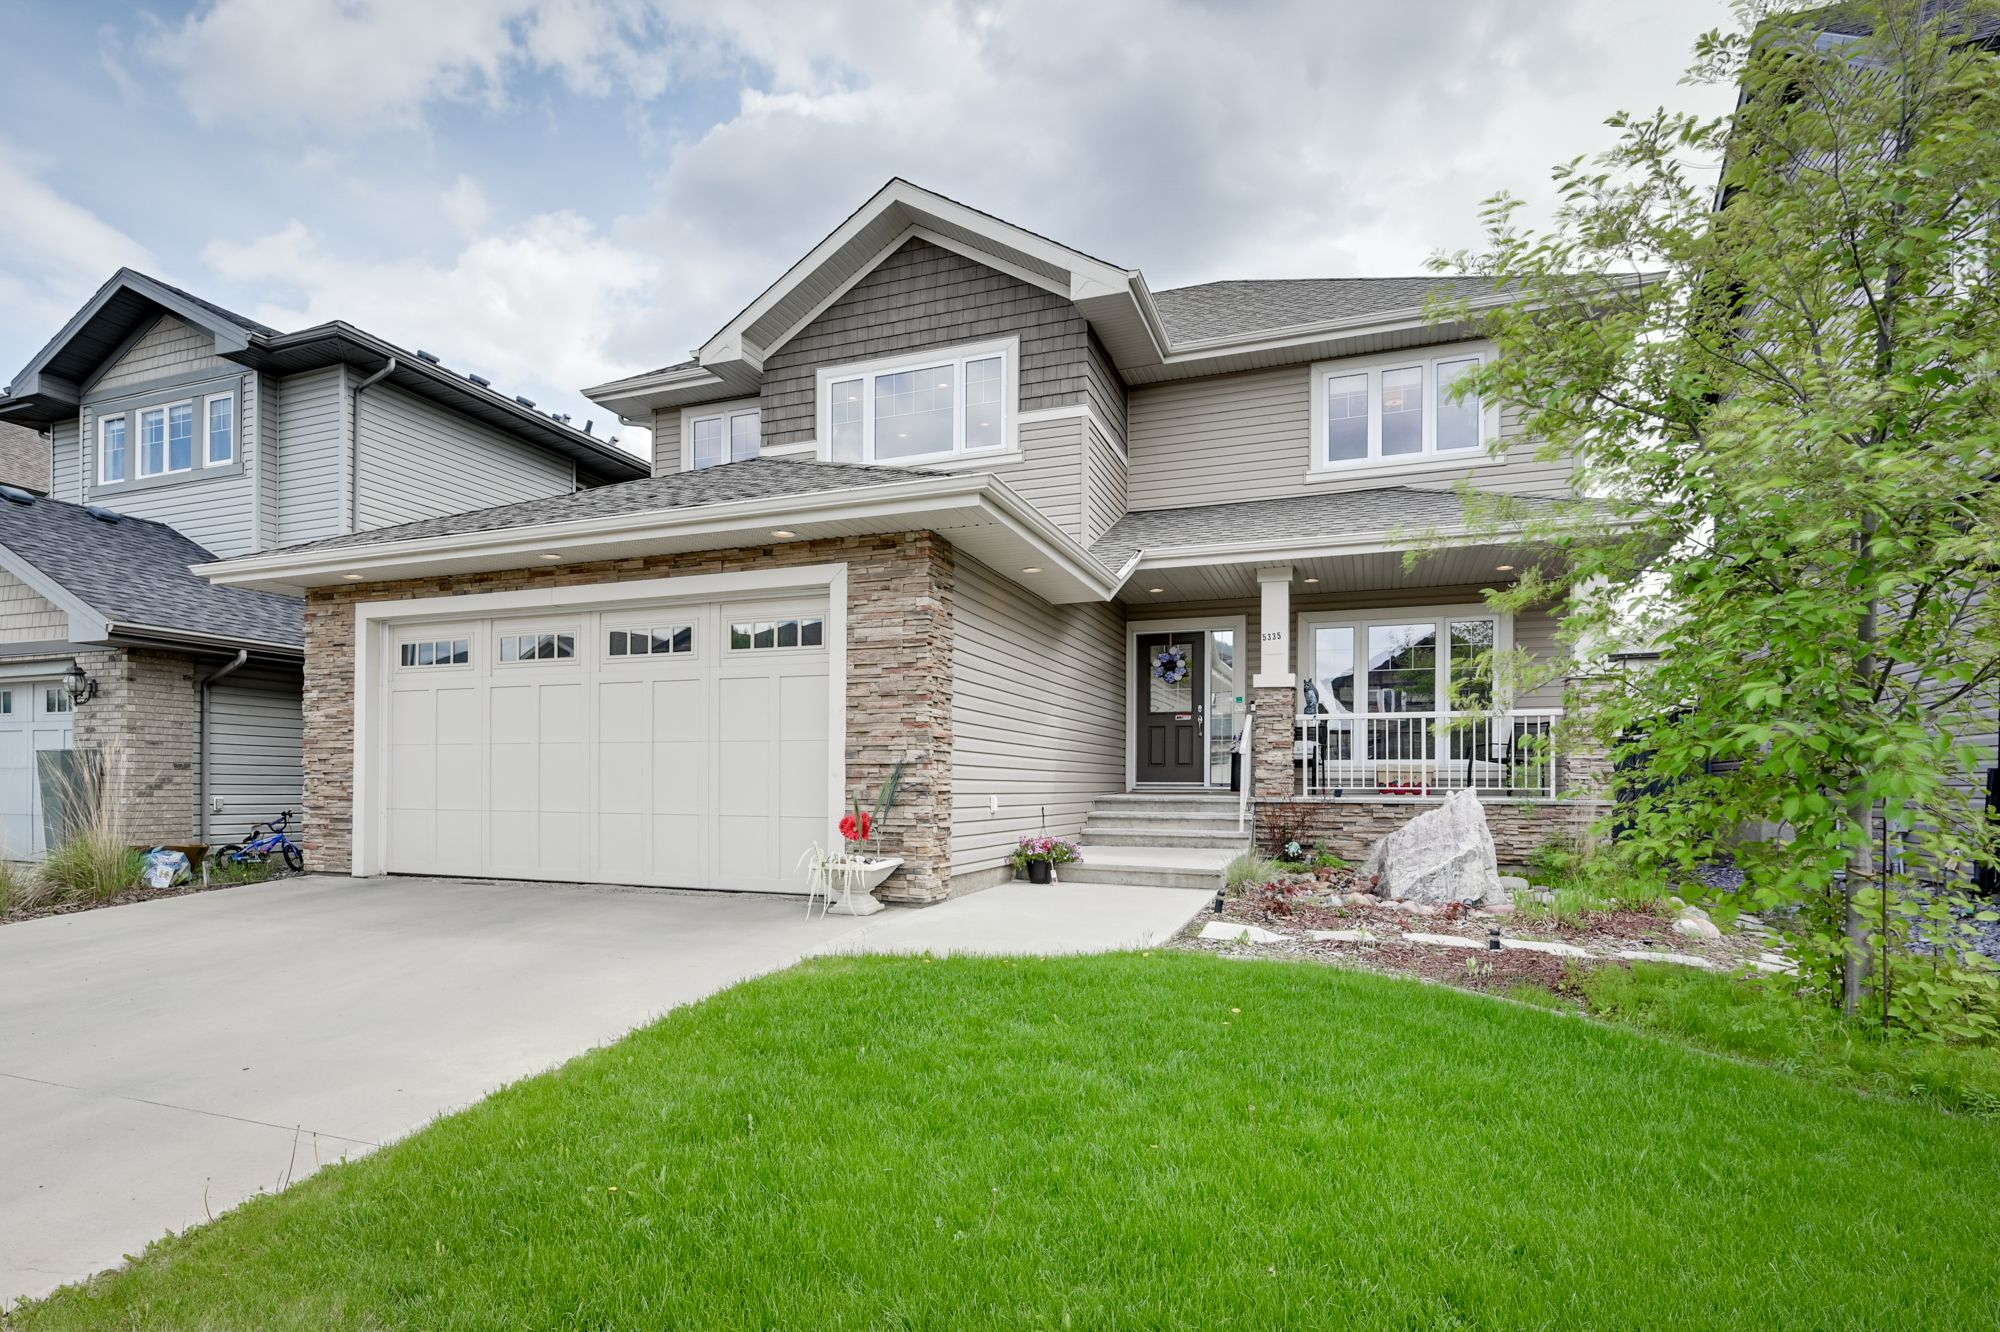 Main Photo: 5335 Mullen Bend in Edmonton: House for sale